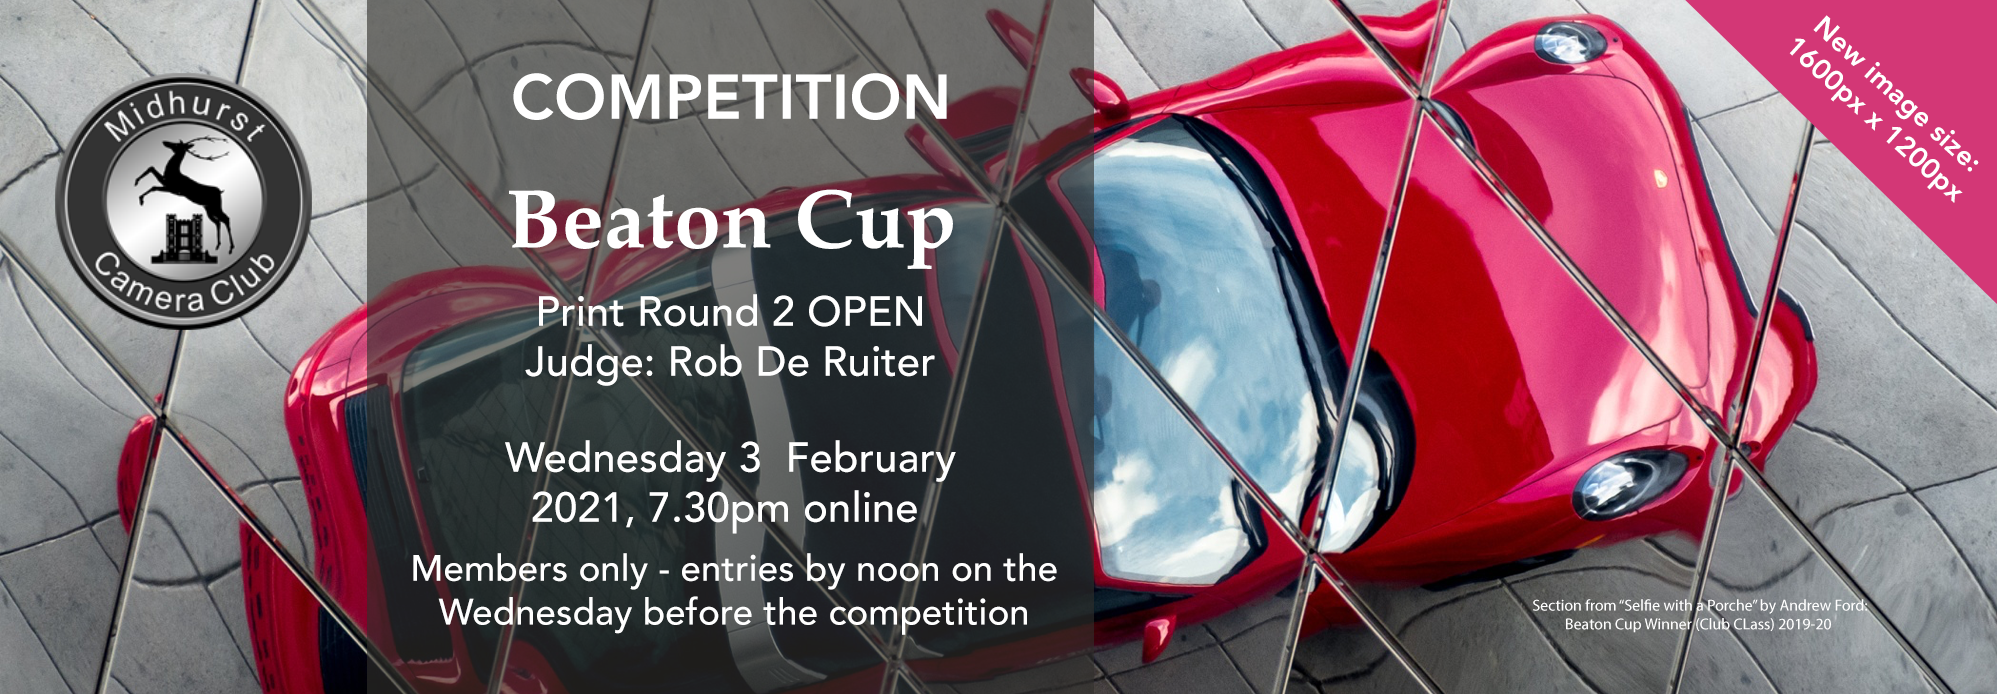 Beaton Cup Print Competition